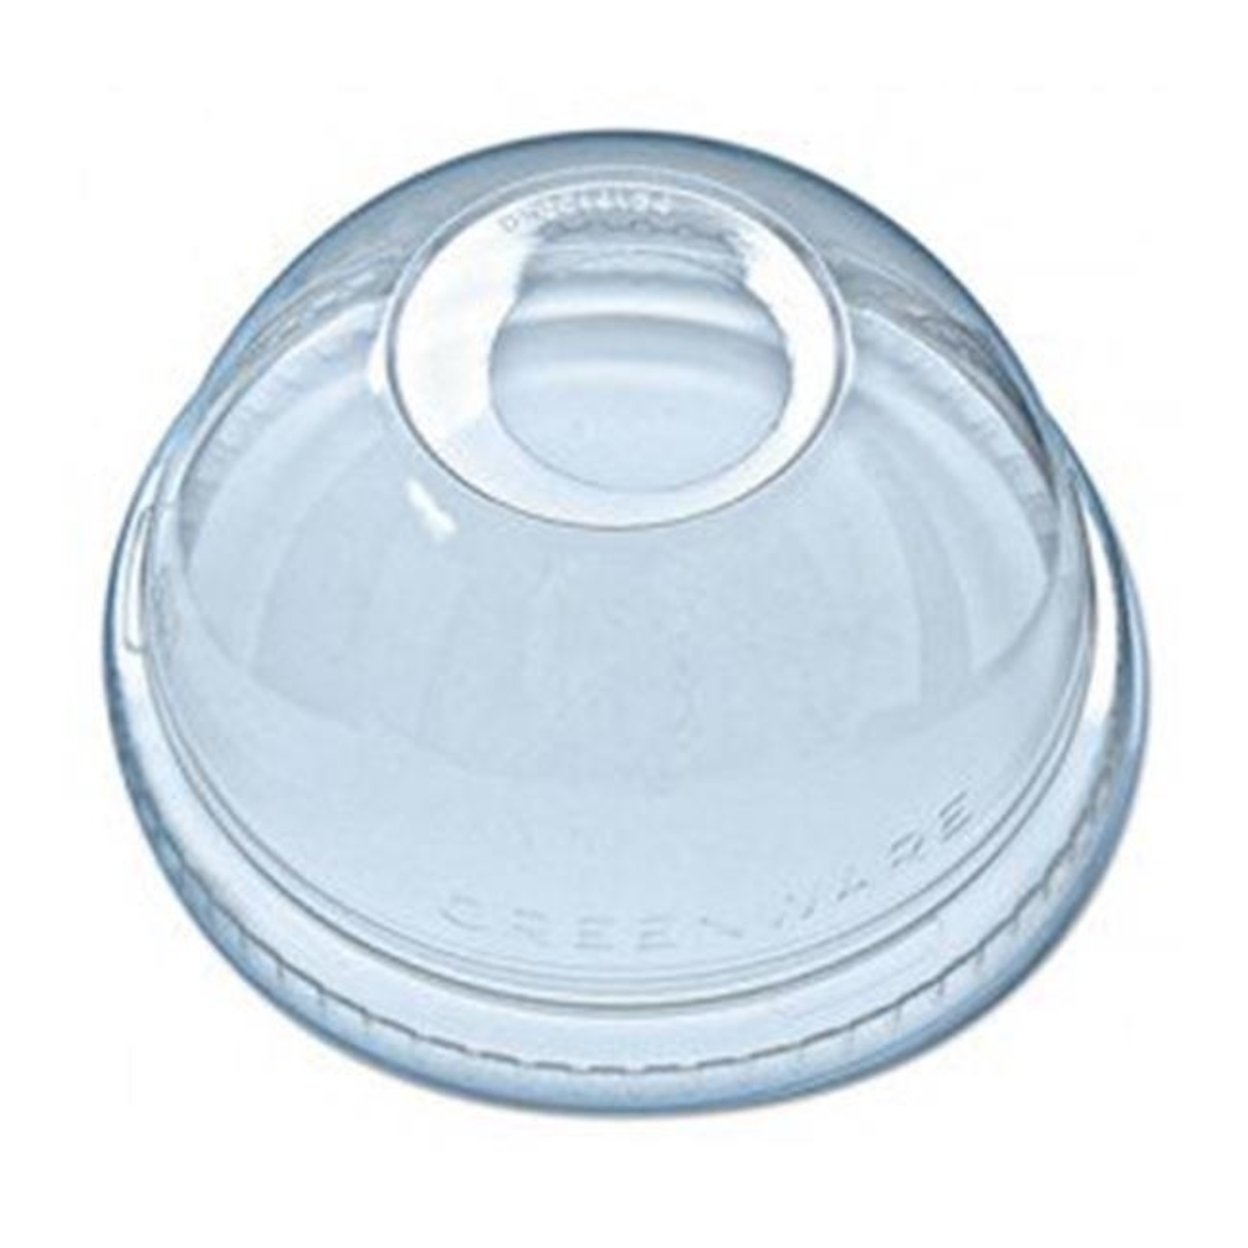 Fabri-Kal Dlkc1624 Drink Cup Lids 5-24 oz. Cups Clear 59f0abc8e224615add19f838